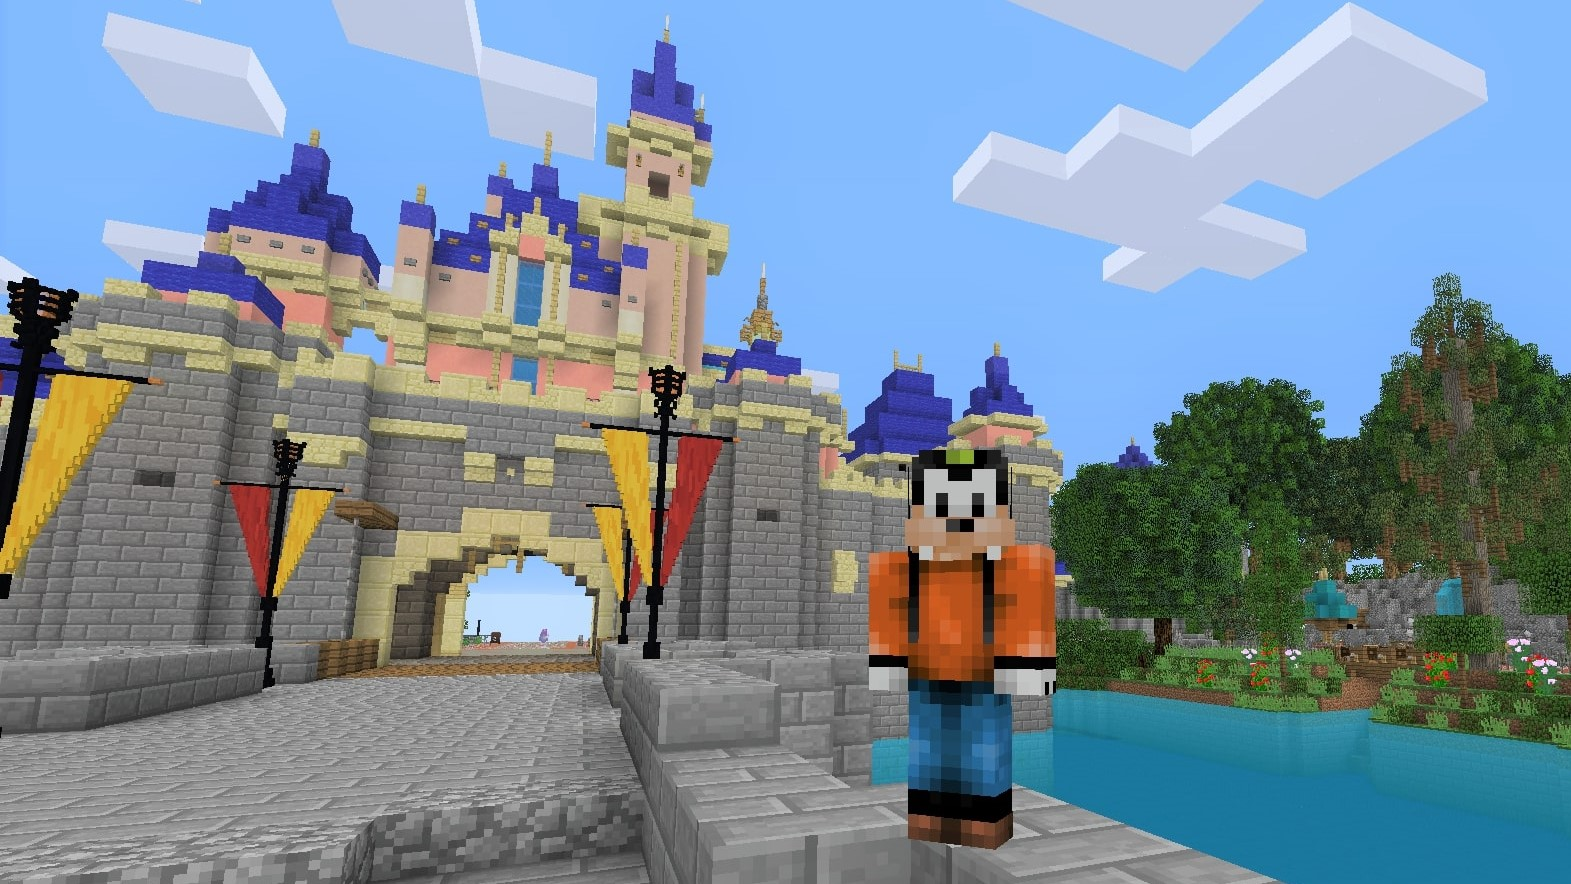 I visited Minecraft's most realistic Disneyland park